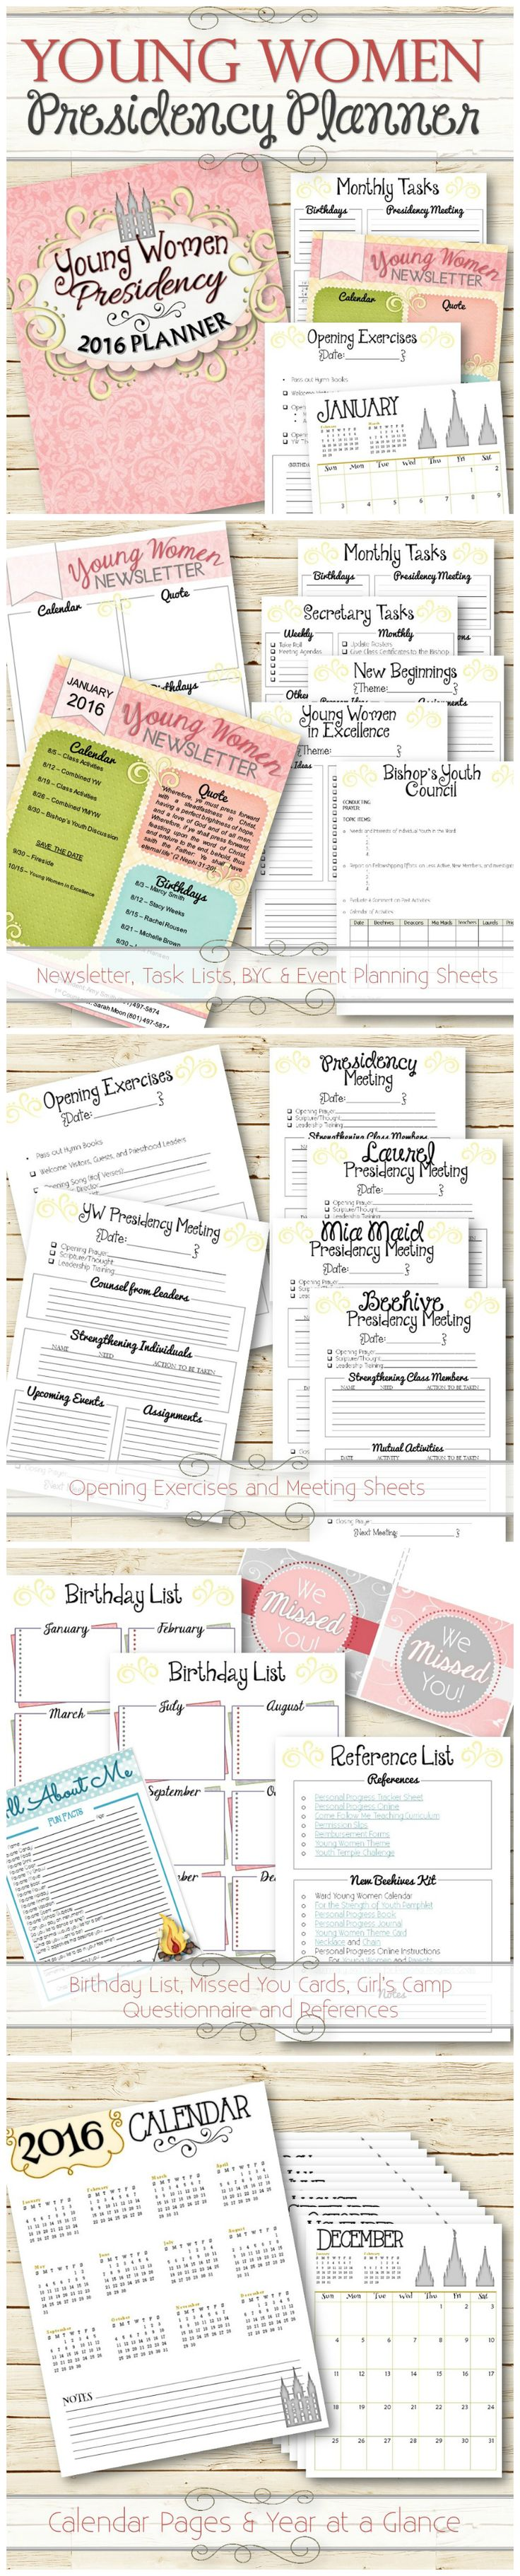 """A stylish way to make managing all the responsibilities and tasks in the LDS Young Women's Program simple and easy. The 2016 planner Includes 32 Pages (Measures 8.5""""x11"""") - Editable Newsletter - Presidency Monthly Tasks - Secretary Tasks - New Beginnings Planning Sheet - Young Women in Excellence Planning Sheet - and more! It's jam packed with tons of helpful resources to make this calling more simple and manageable. Click thru for freebies!"""